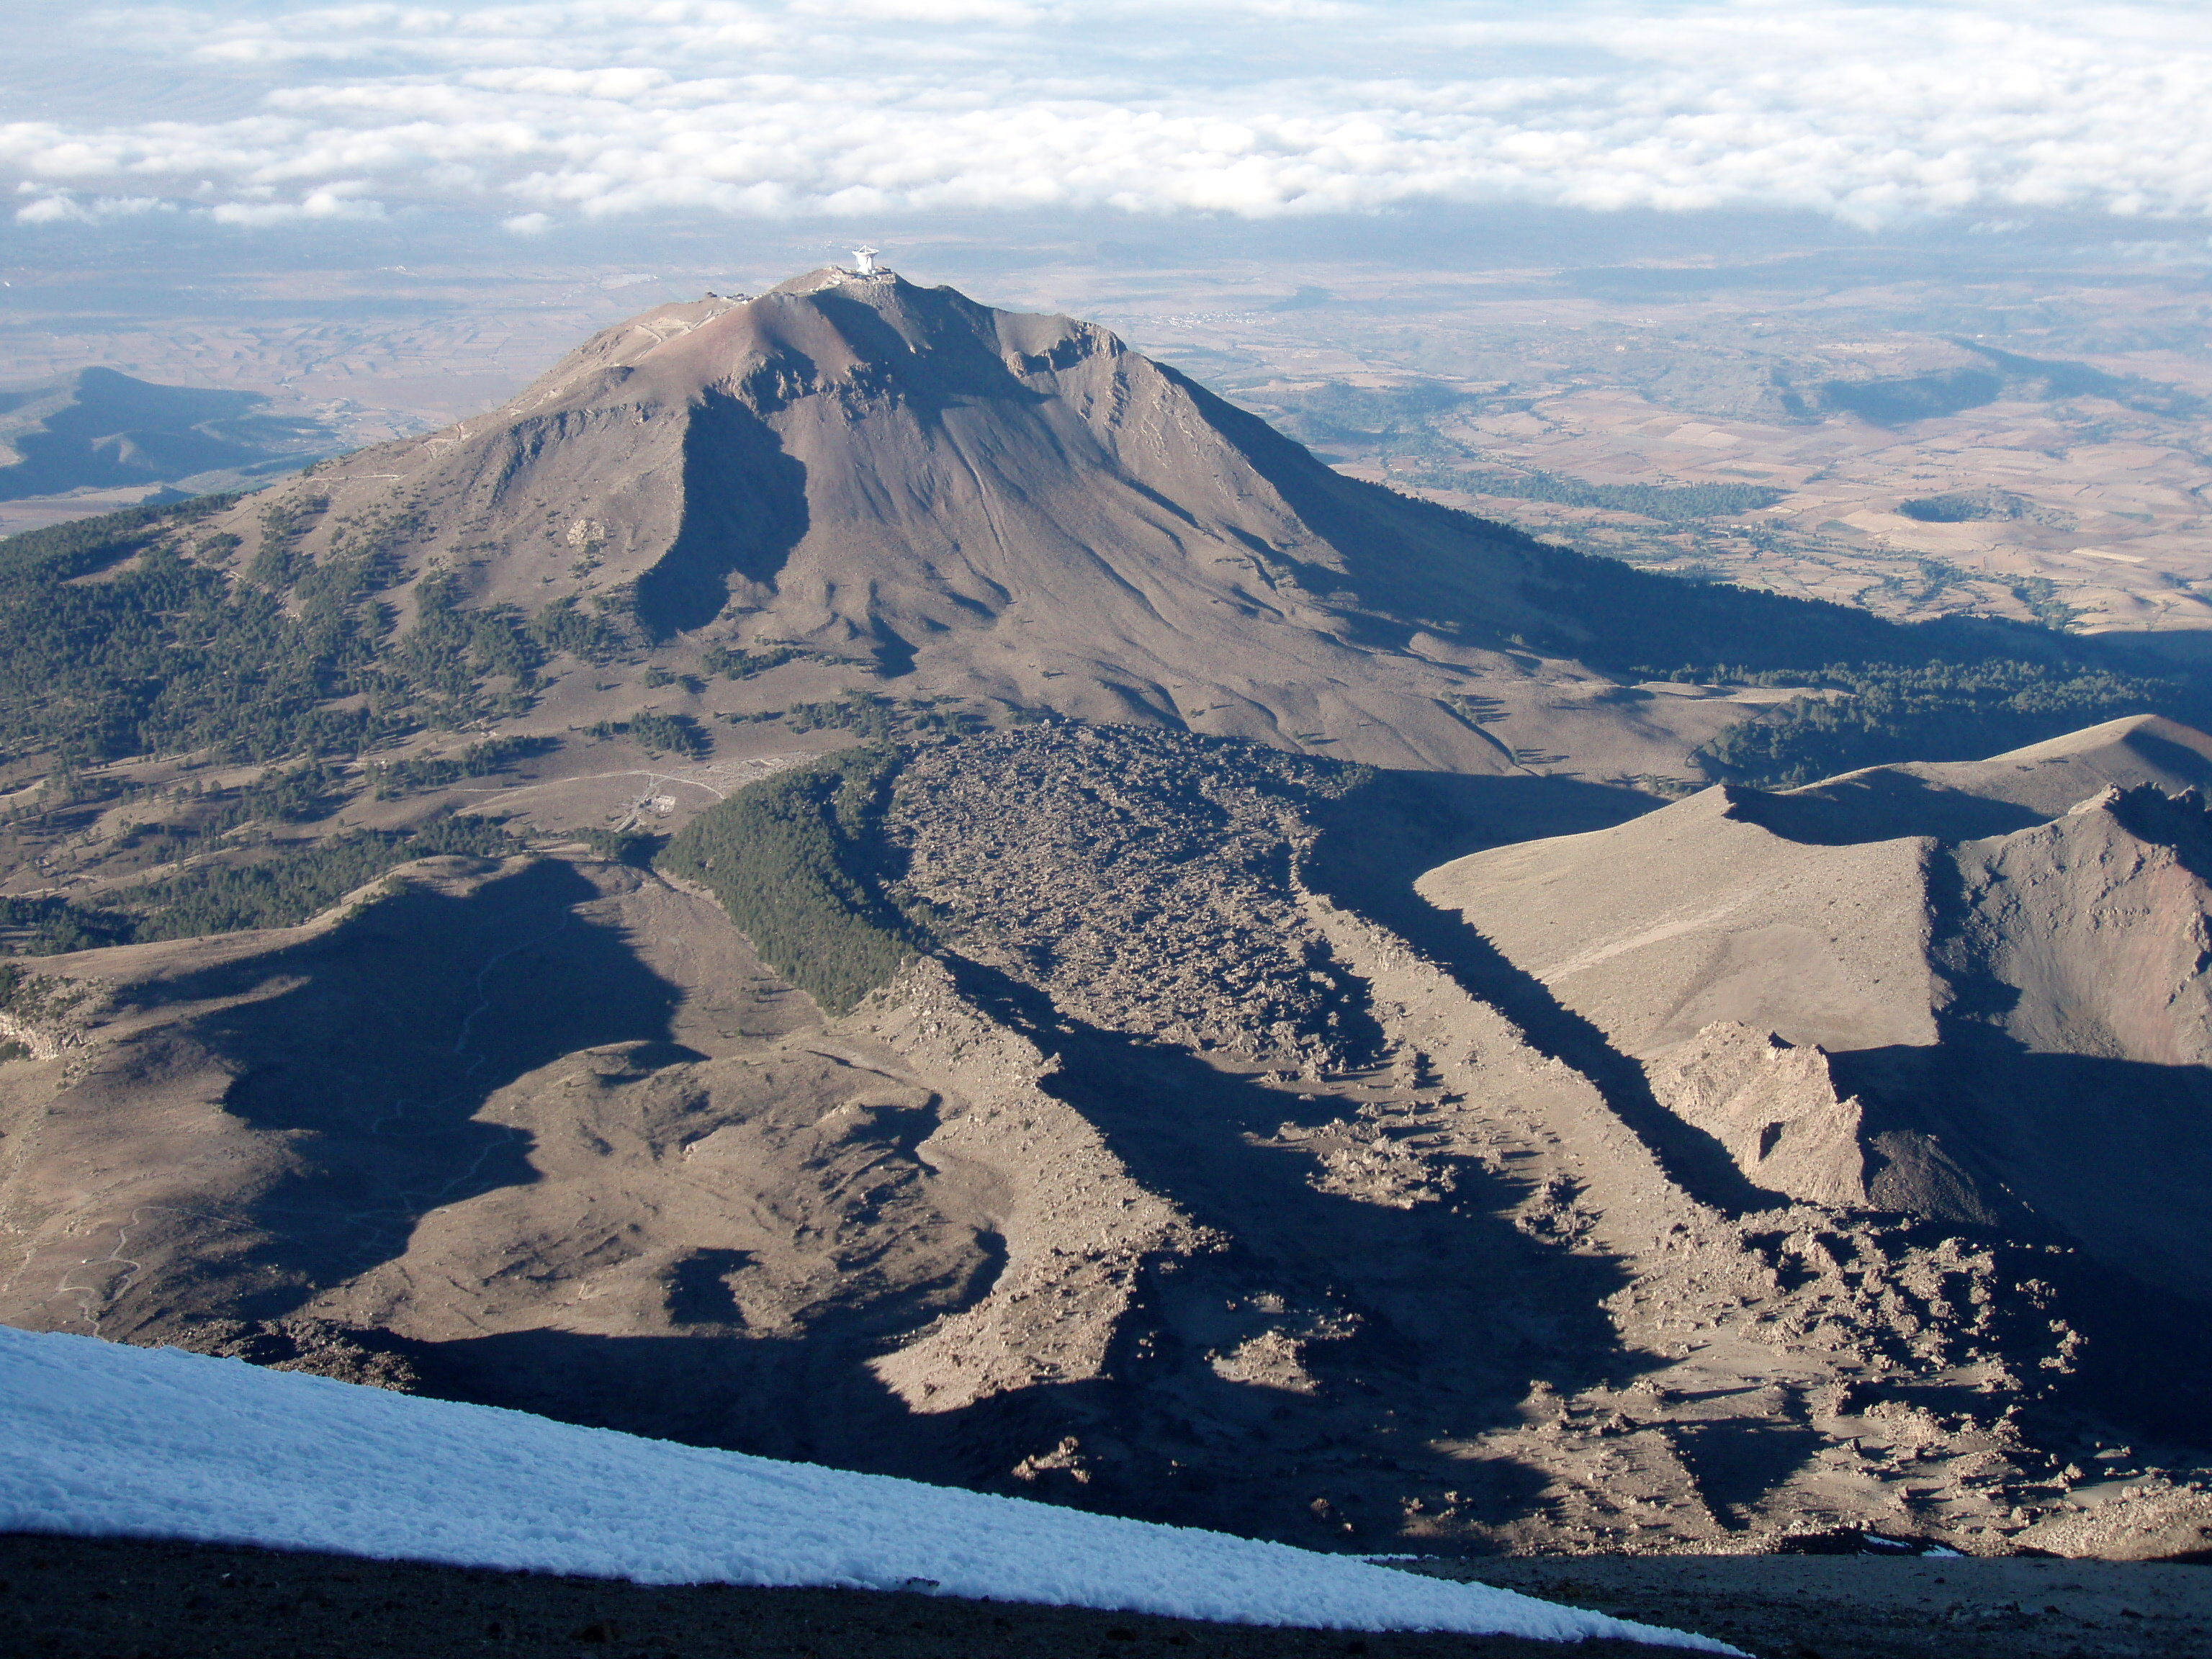 Pico de Orizaba : Climbing, Hiking & Mountaineering : SummitPost.